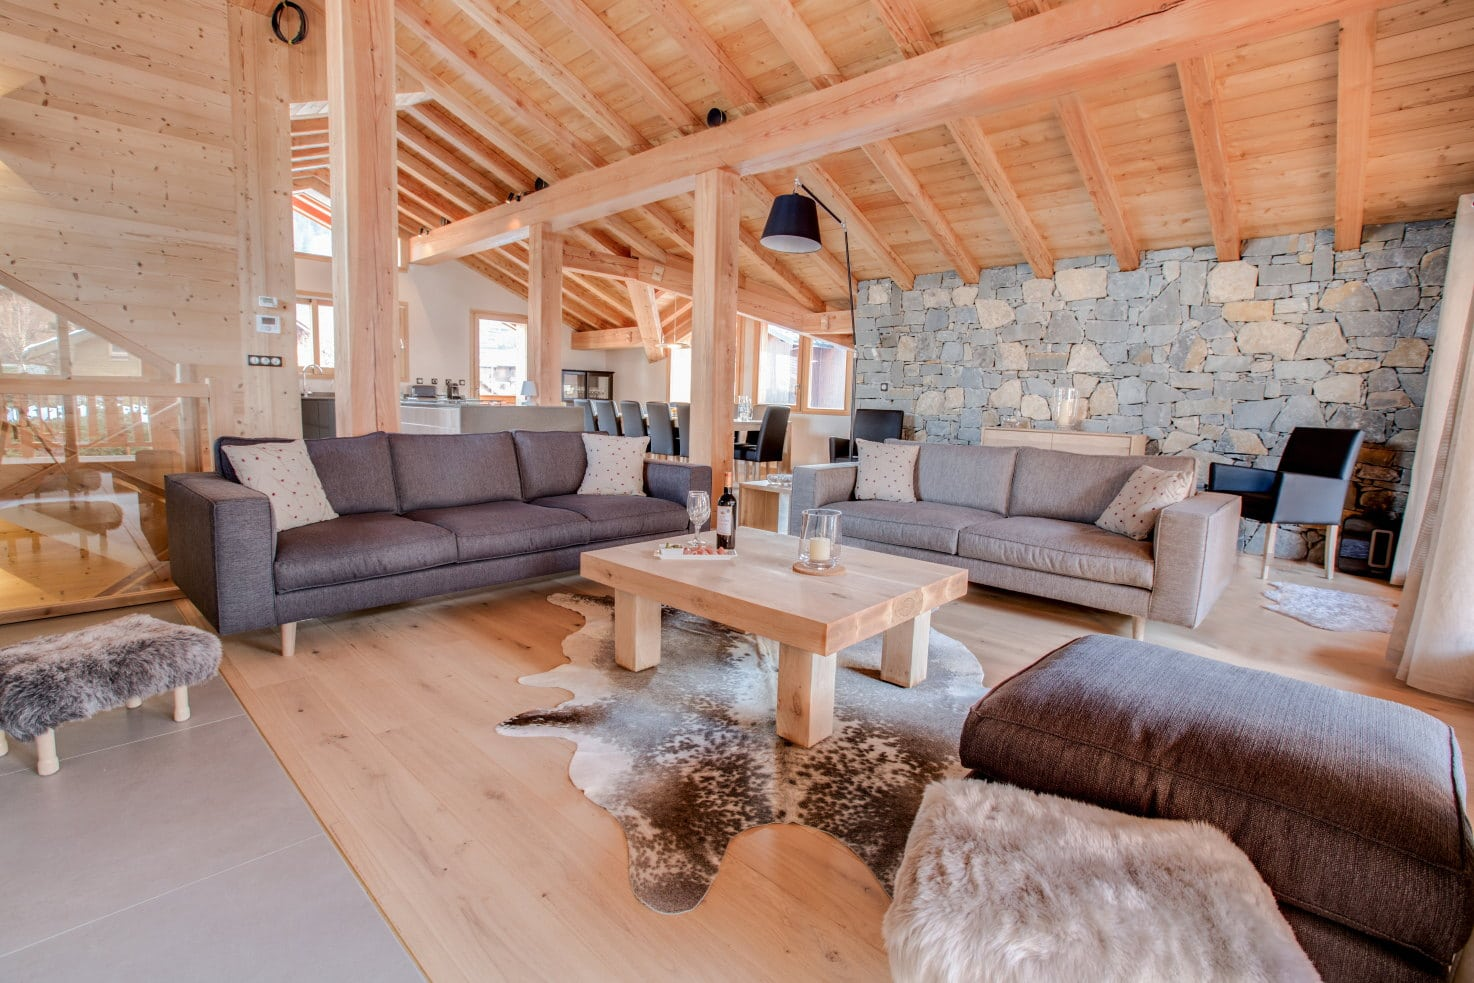 Our Luxury Chalet